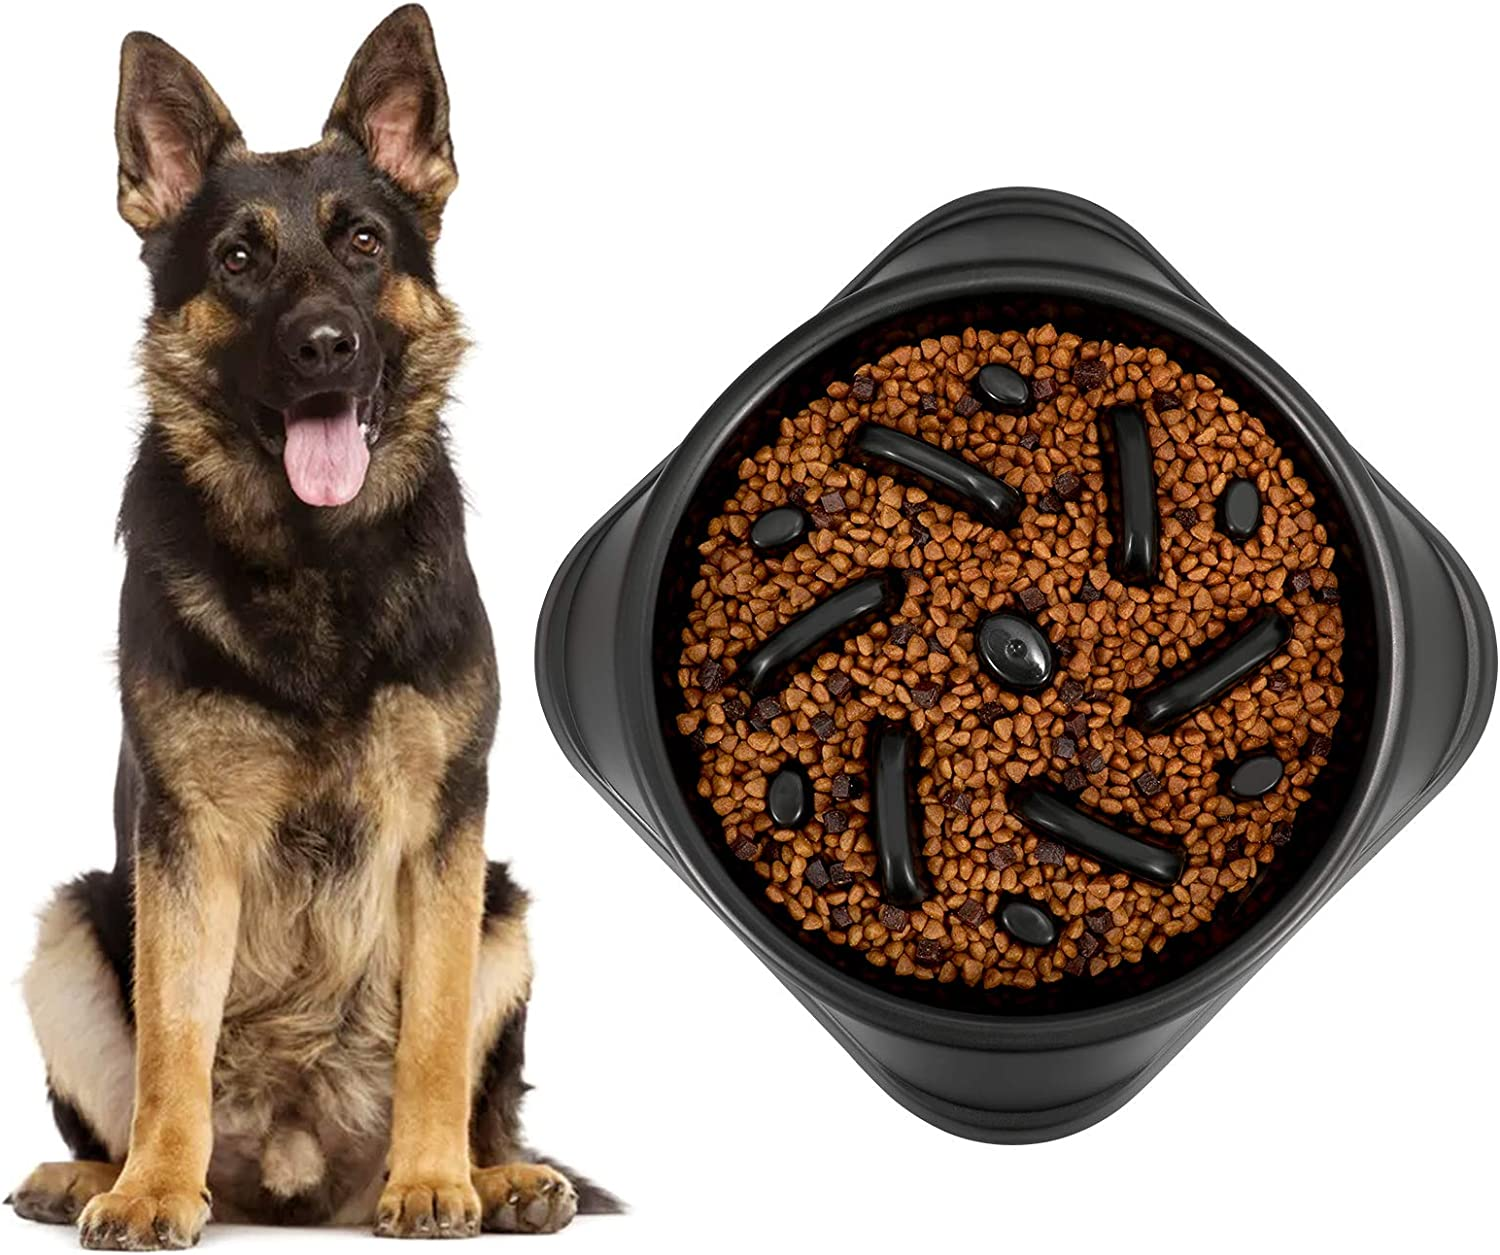 KASBAH Slow Feeder Dog Bowl for Large Dogs, Non Slip Puzzle Bowl Pet Bowl Non-Toxic Bloat Stop Large Dog Bowl Dog Food Bowl Eco Friendly